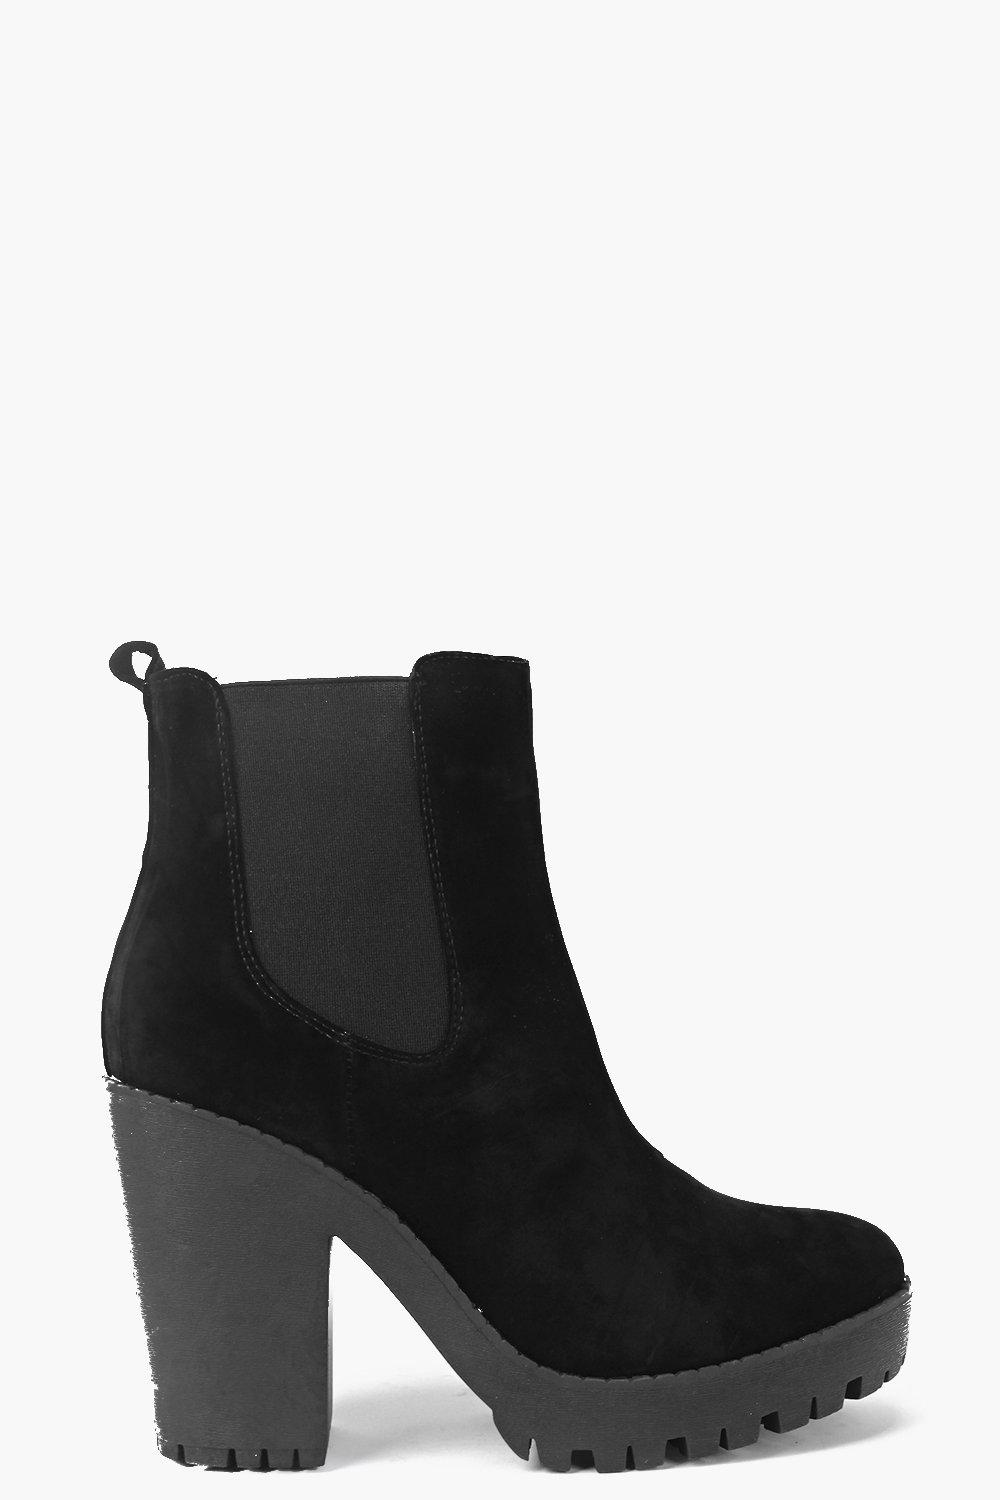 cuissardes & bottes | cuissardes femme | boohoo